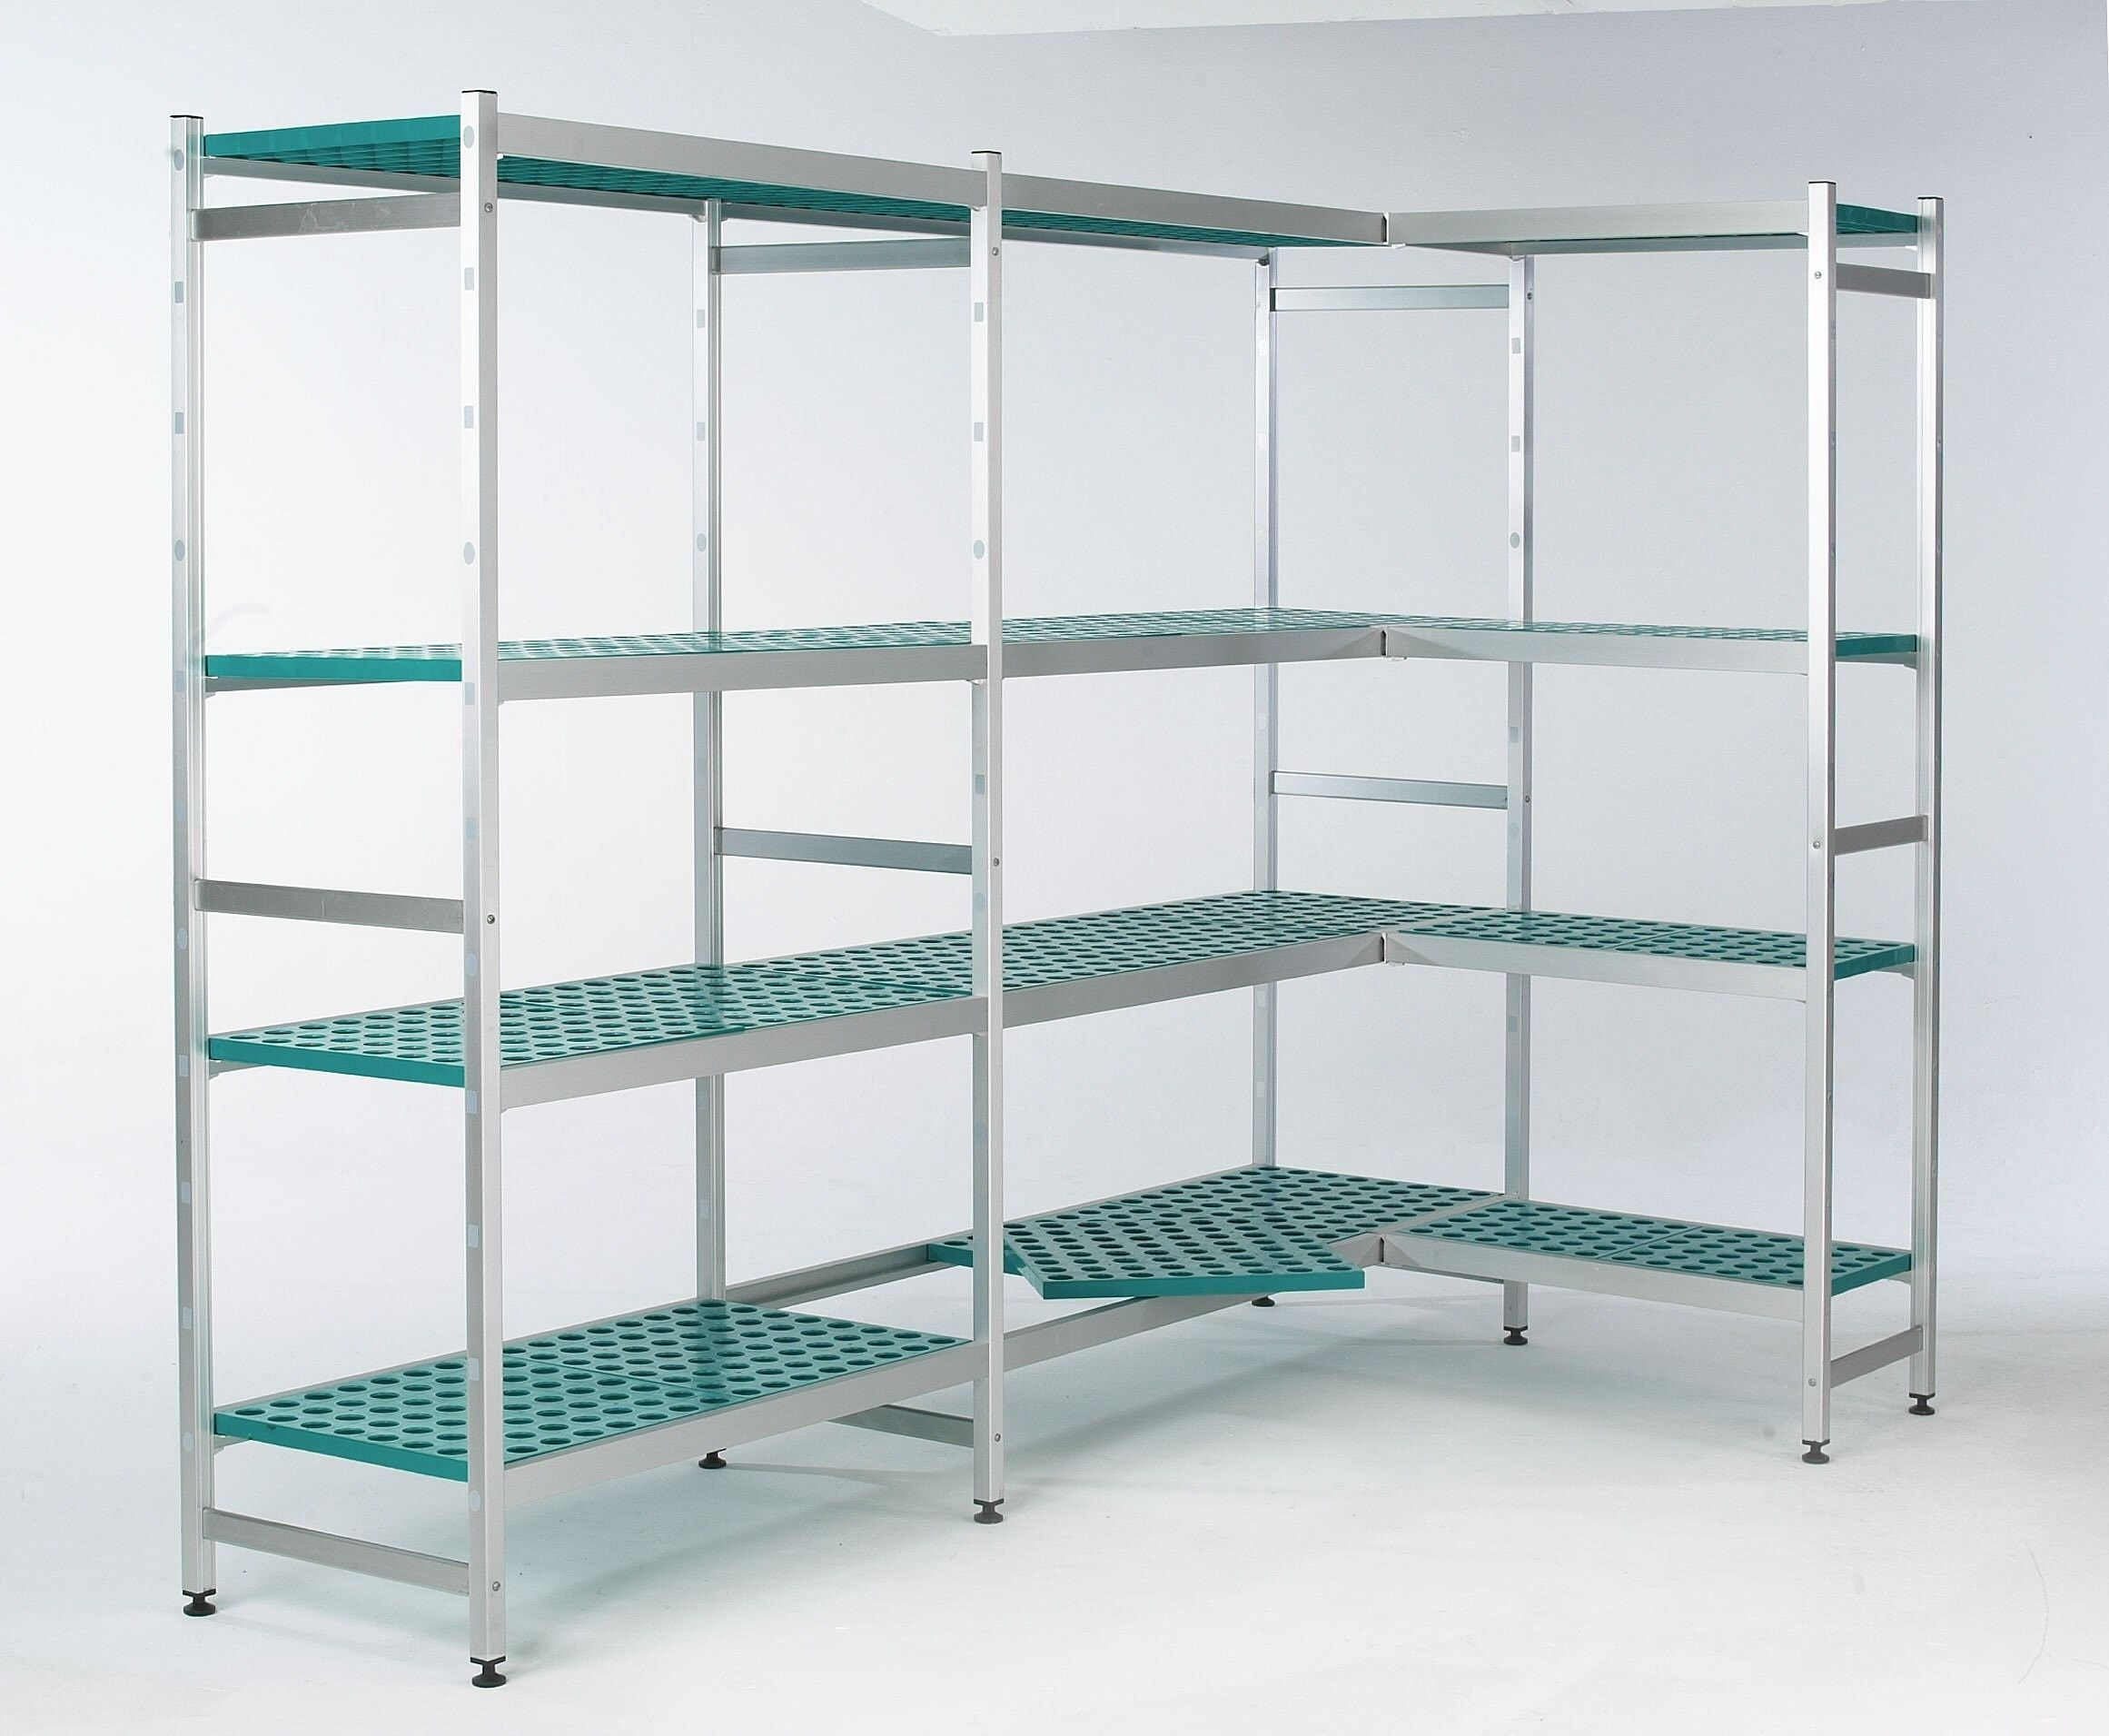 Commercial Kitchen Shelving Uk Stainless Steel Countertops U2013 Always The Best Choice In The